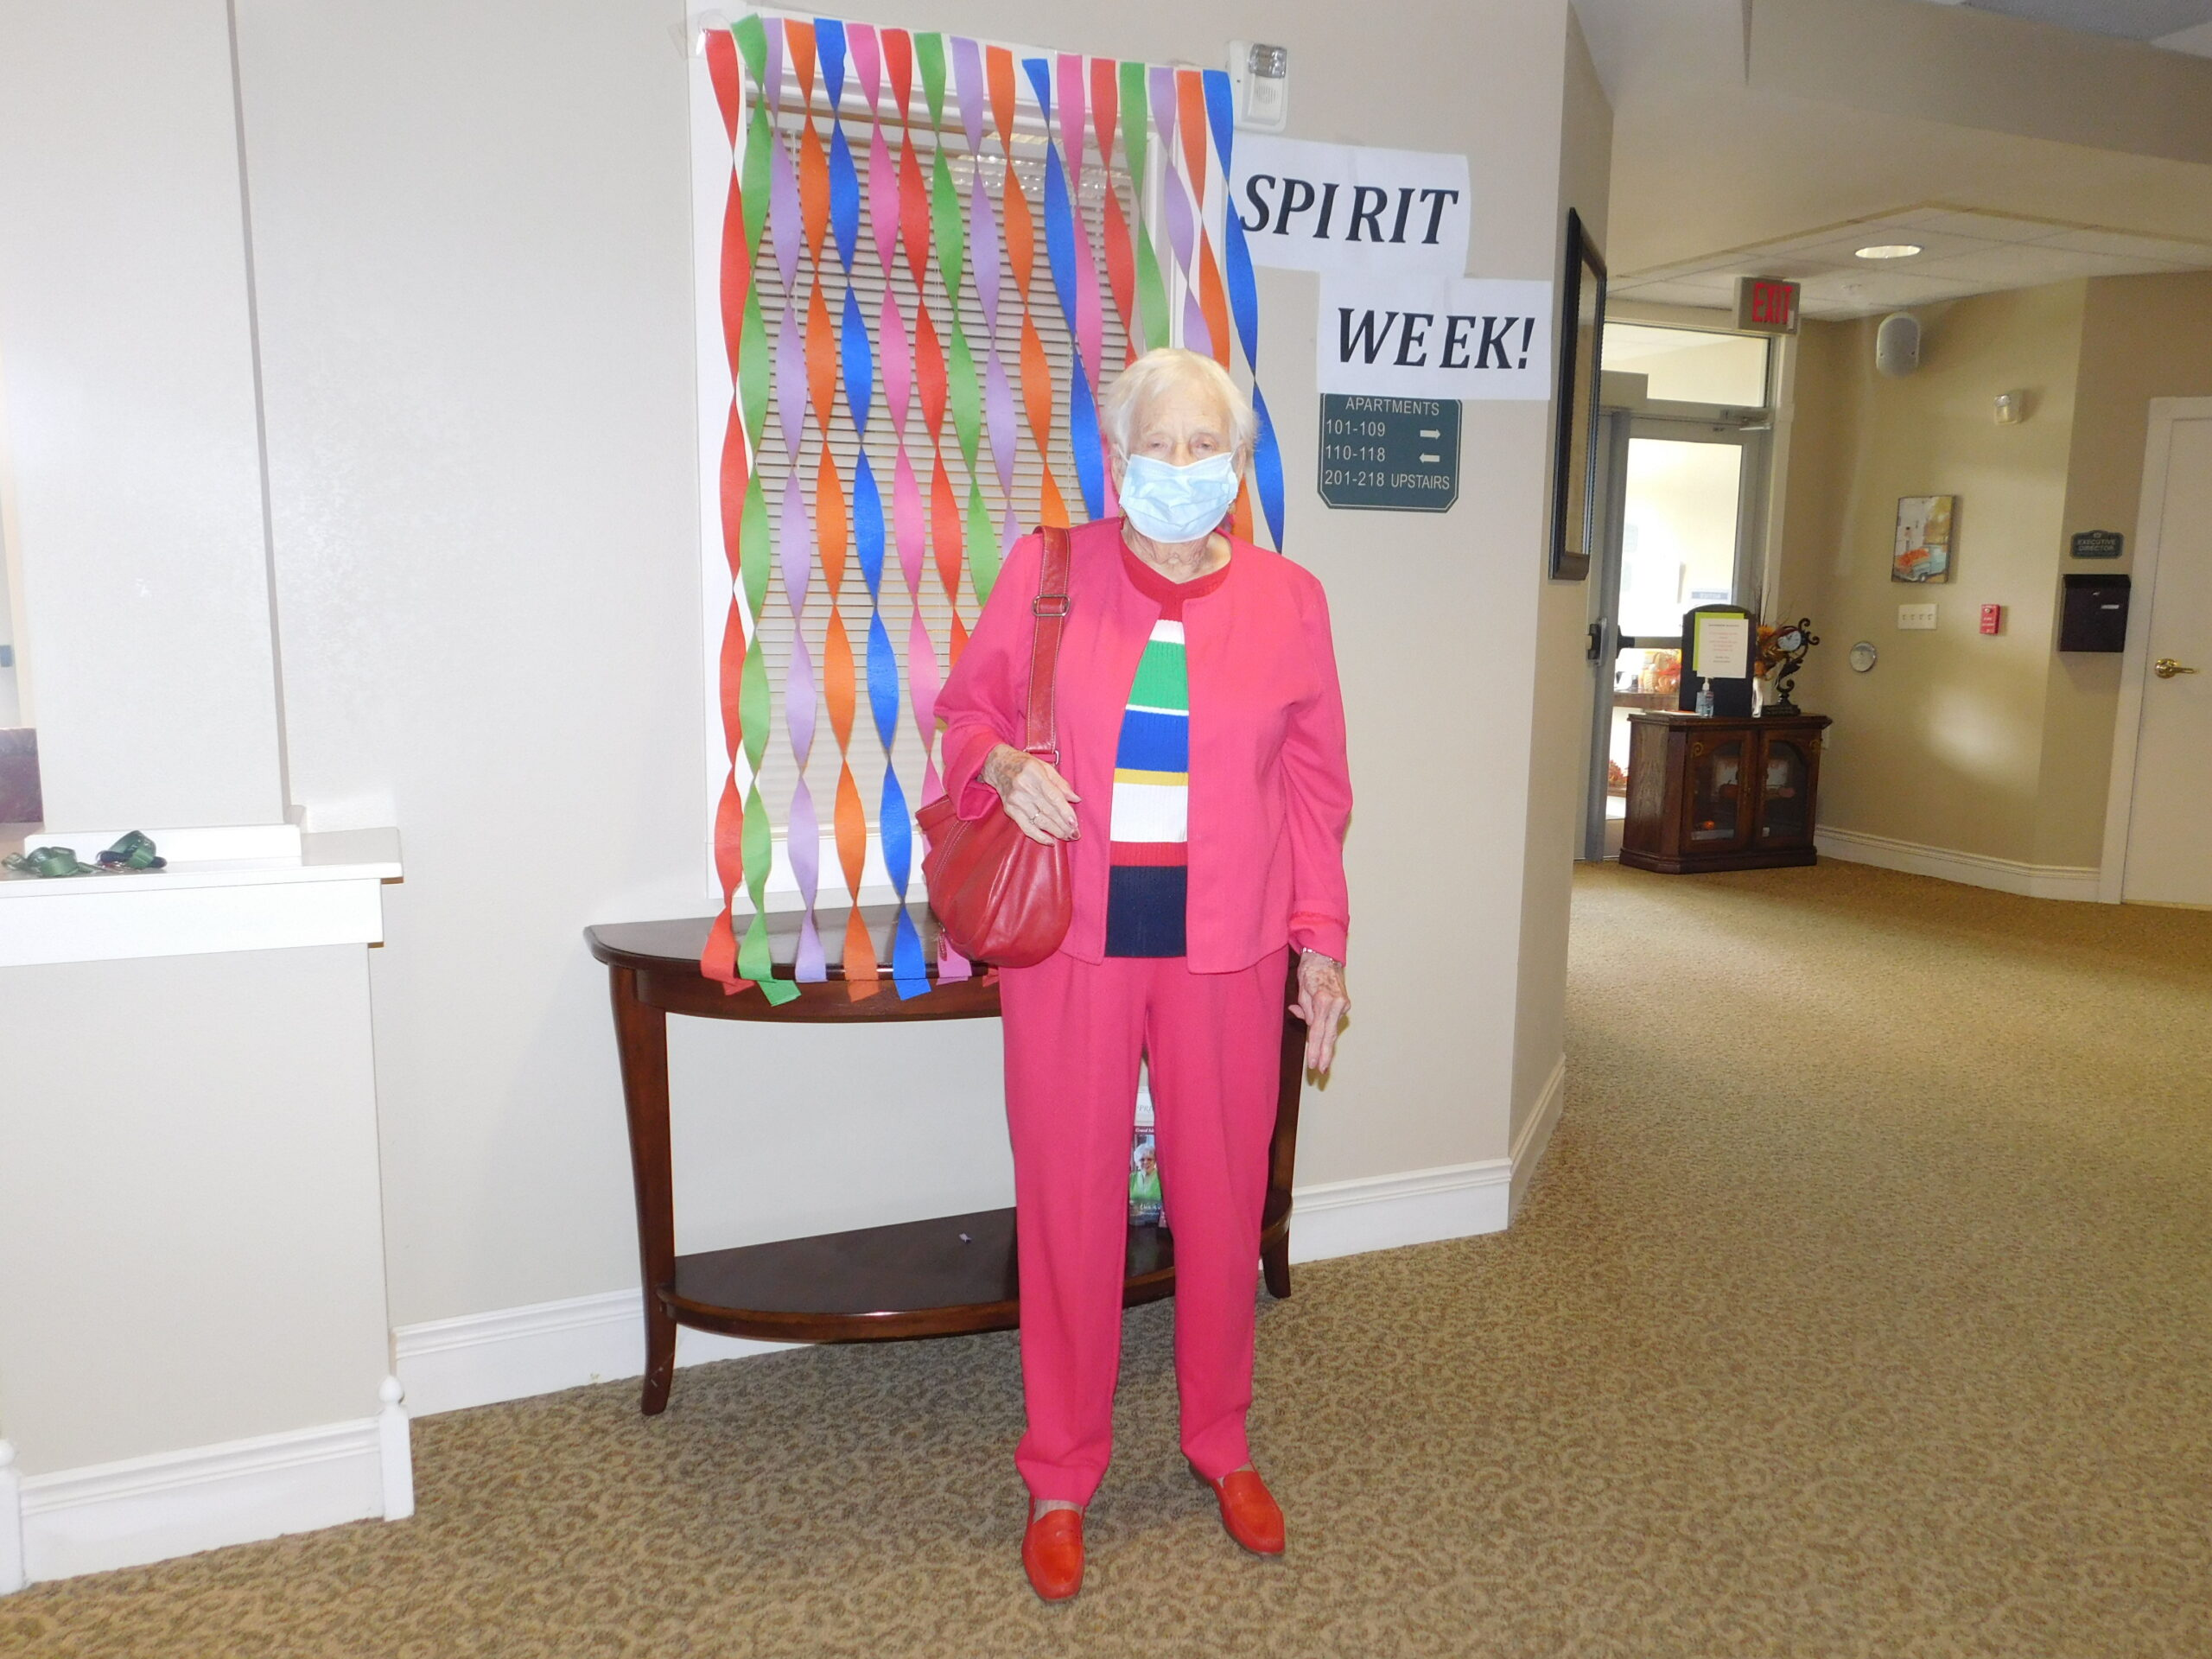 Gloria wins for the Independent Residents with her favorite color outfit during